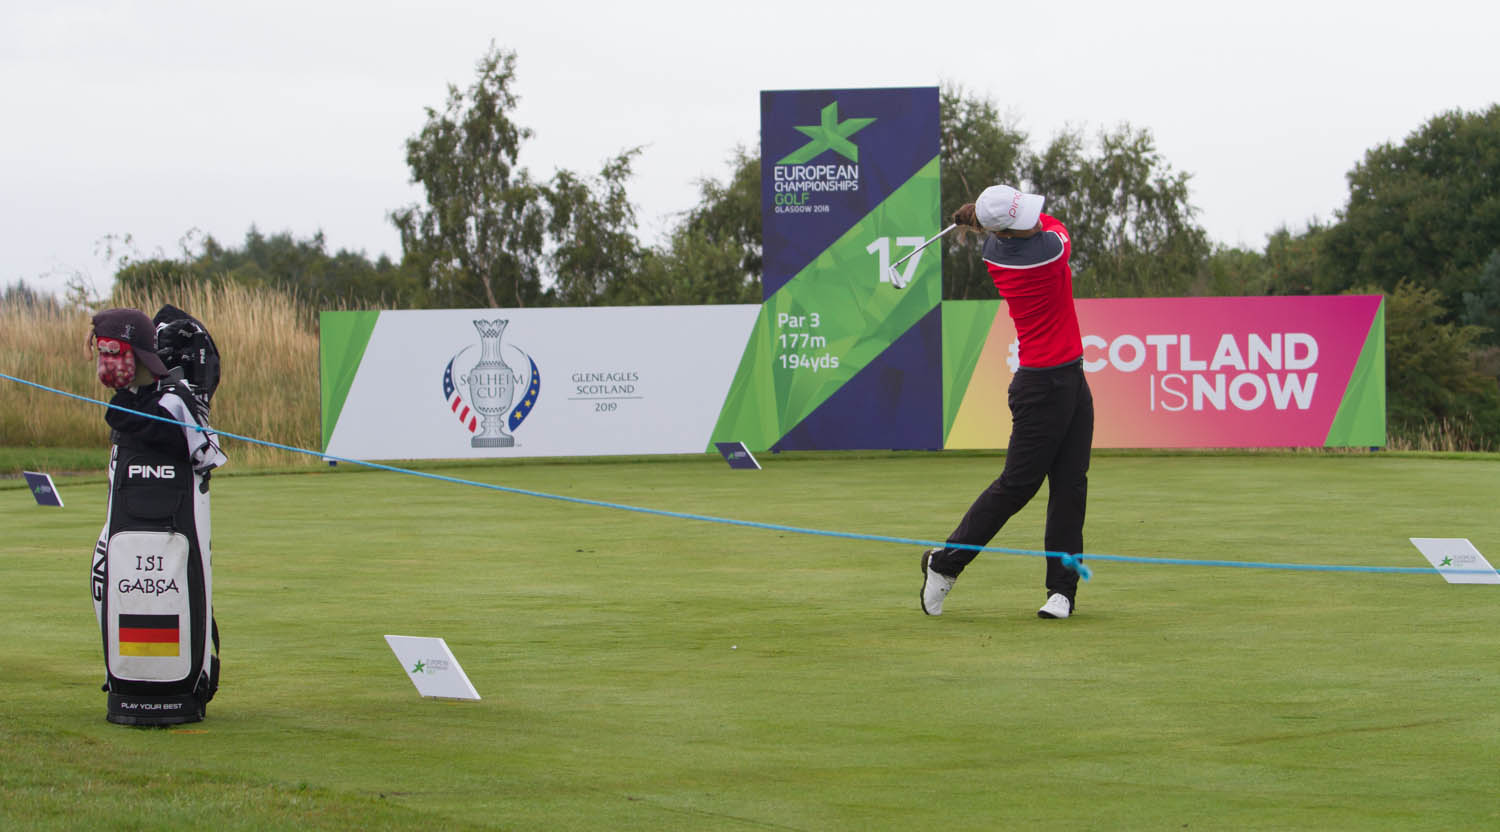 Golfer teeing off at the 2018 European Championships